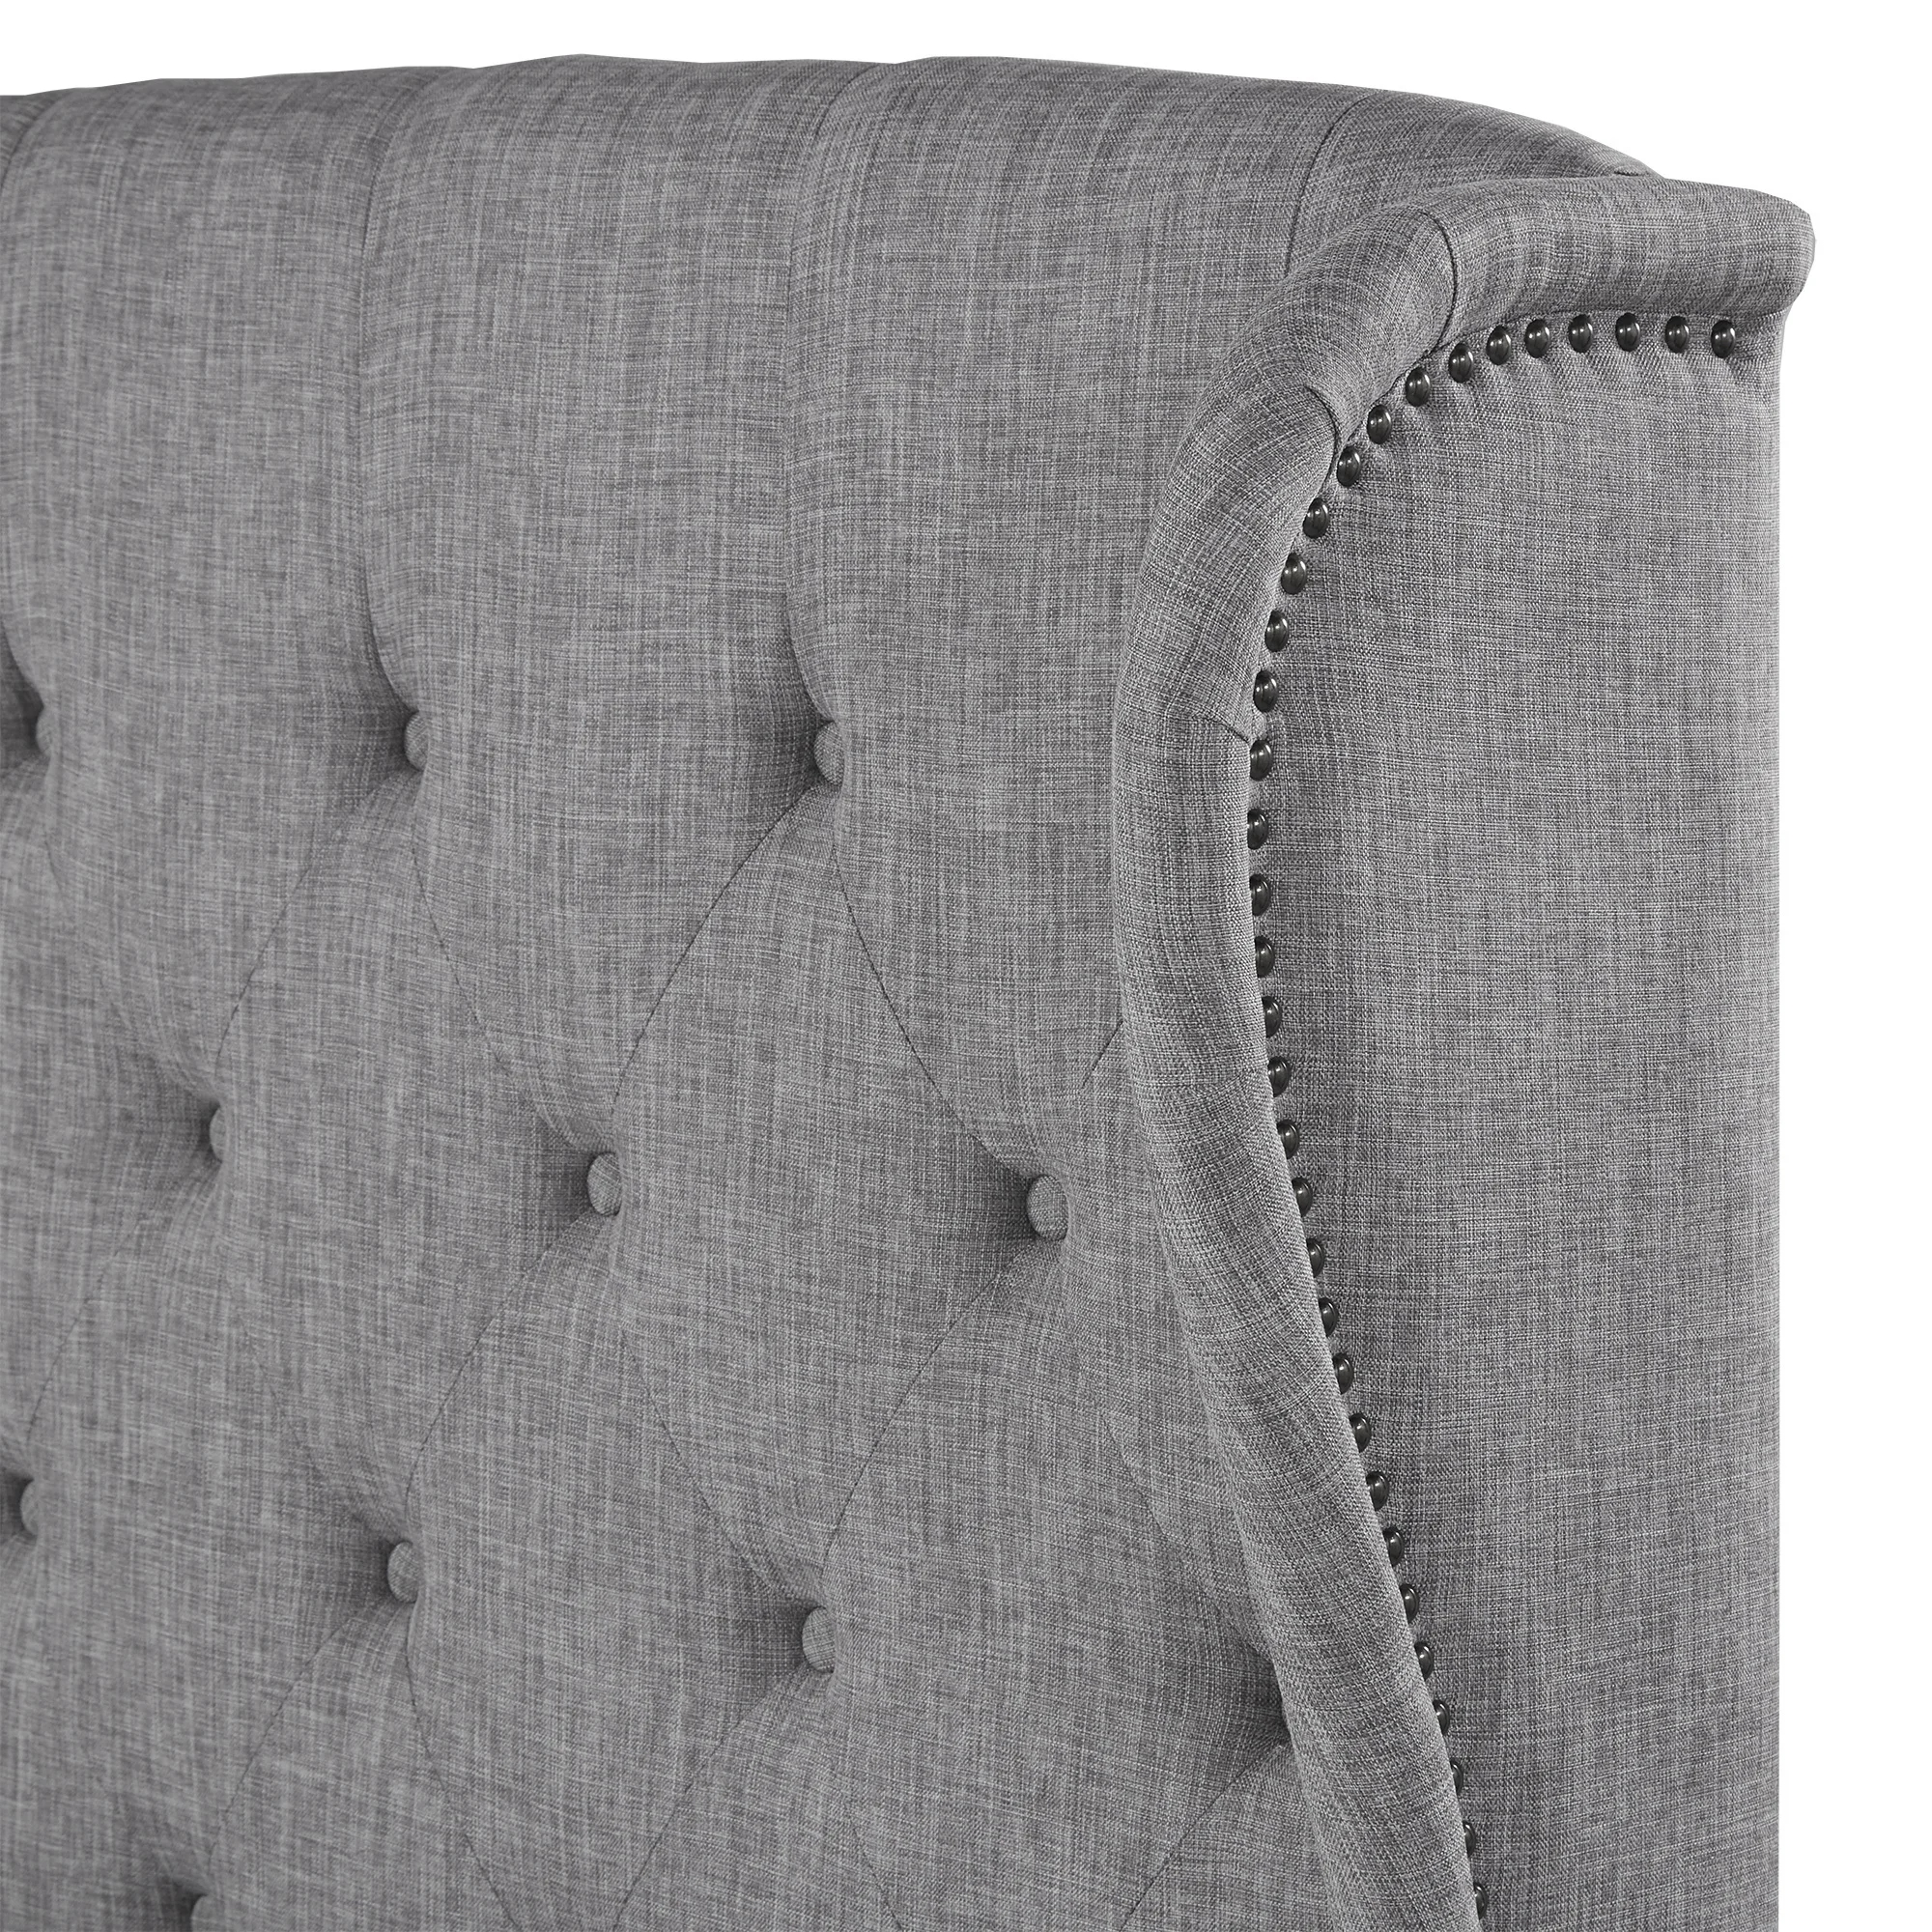 Diningzhi Modern Tufted Linen Fabric French Luxury Bed with Nailhead Trim